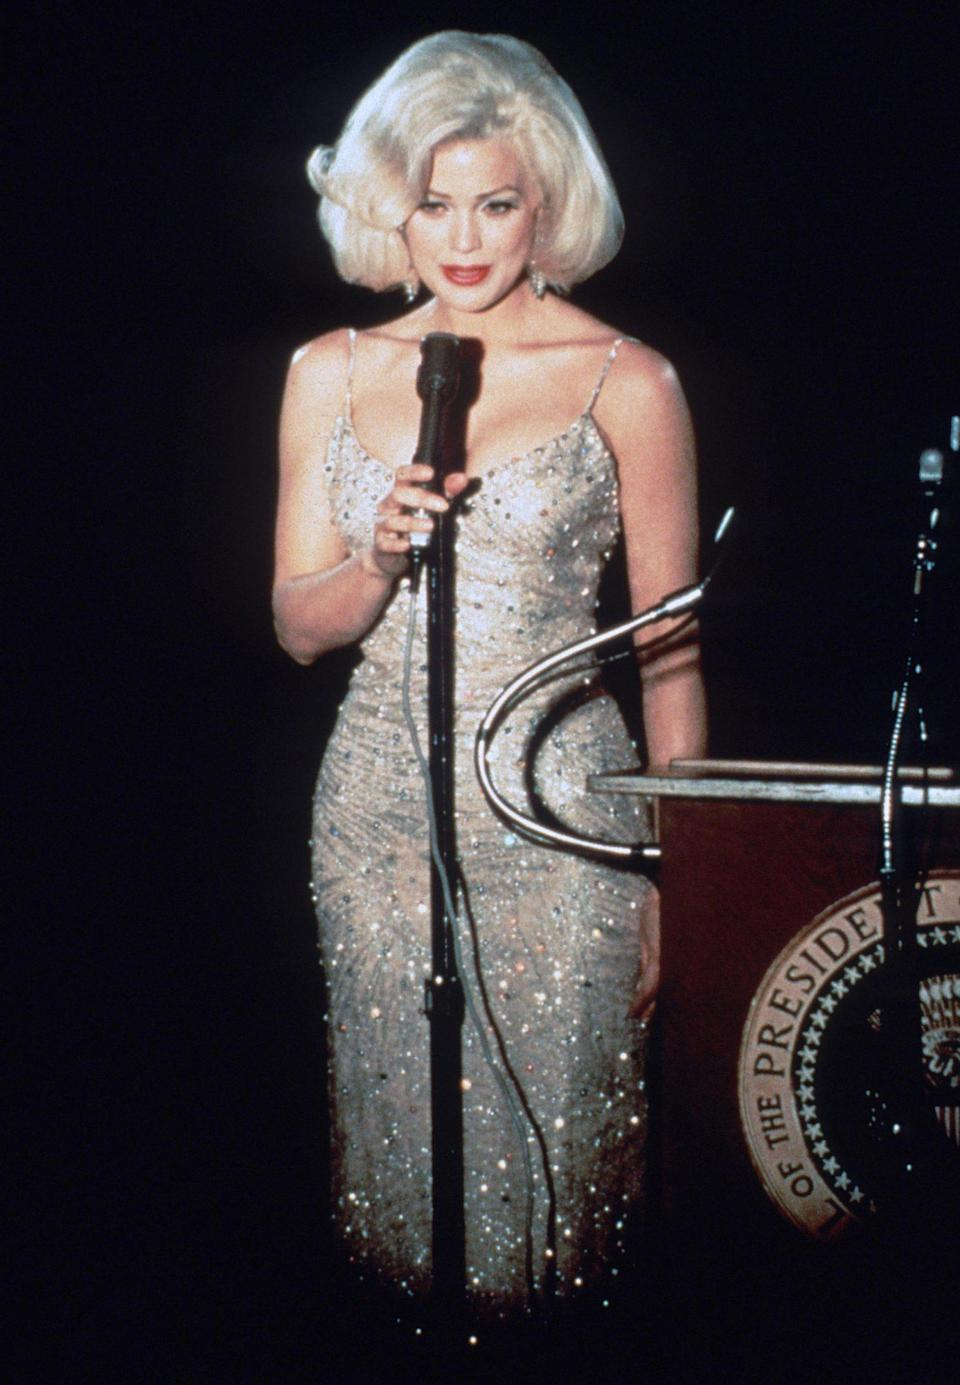 <p>Anderson played the blonde bombshell in the 1993 TV movie, <em>Marilyn & Bobby: Her Final Affair</em>, which was a fictional account of the alleged affair between Monroe and Robert F. Kennedy. </p>